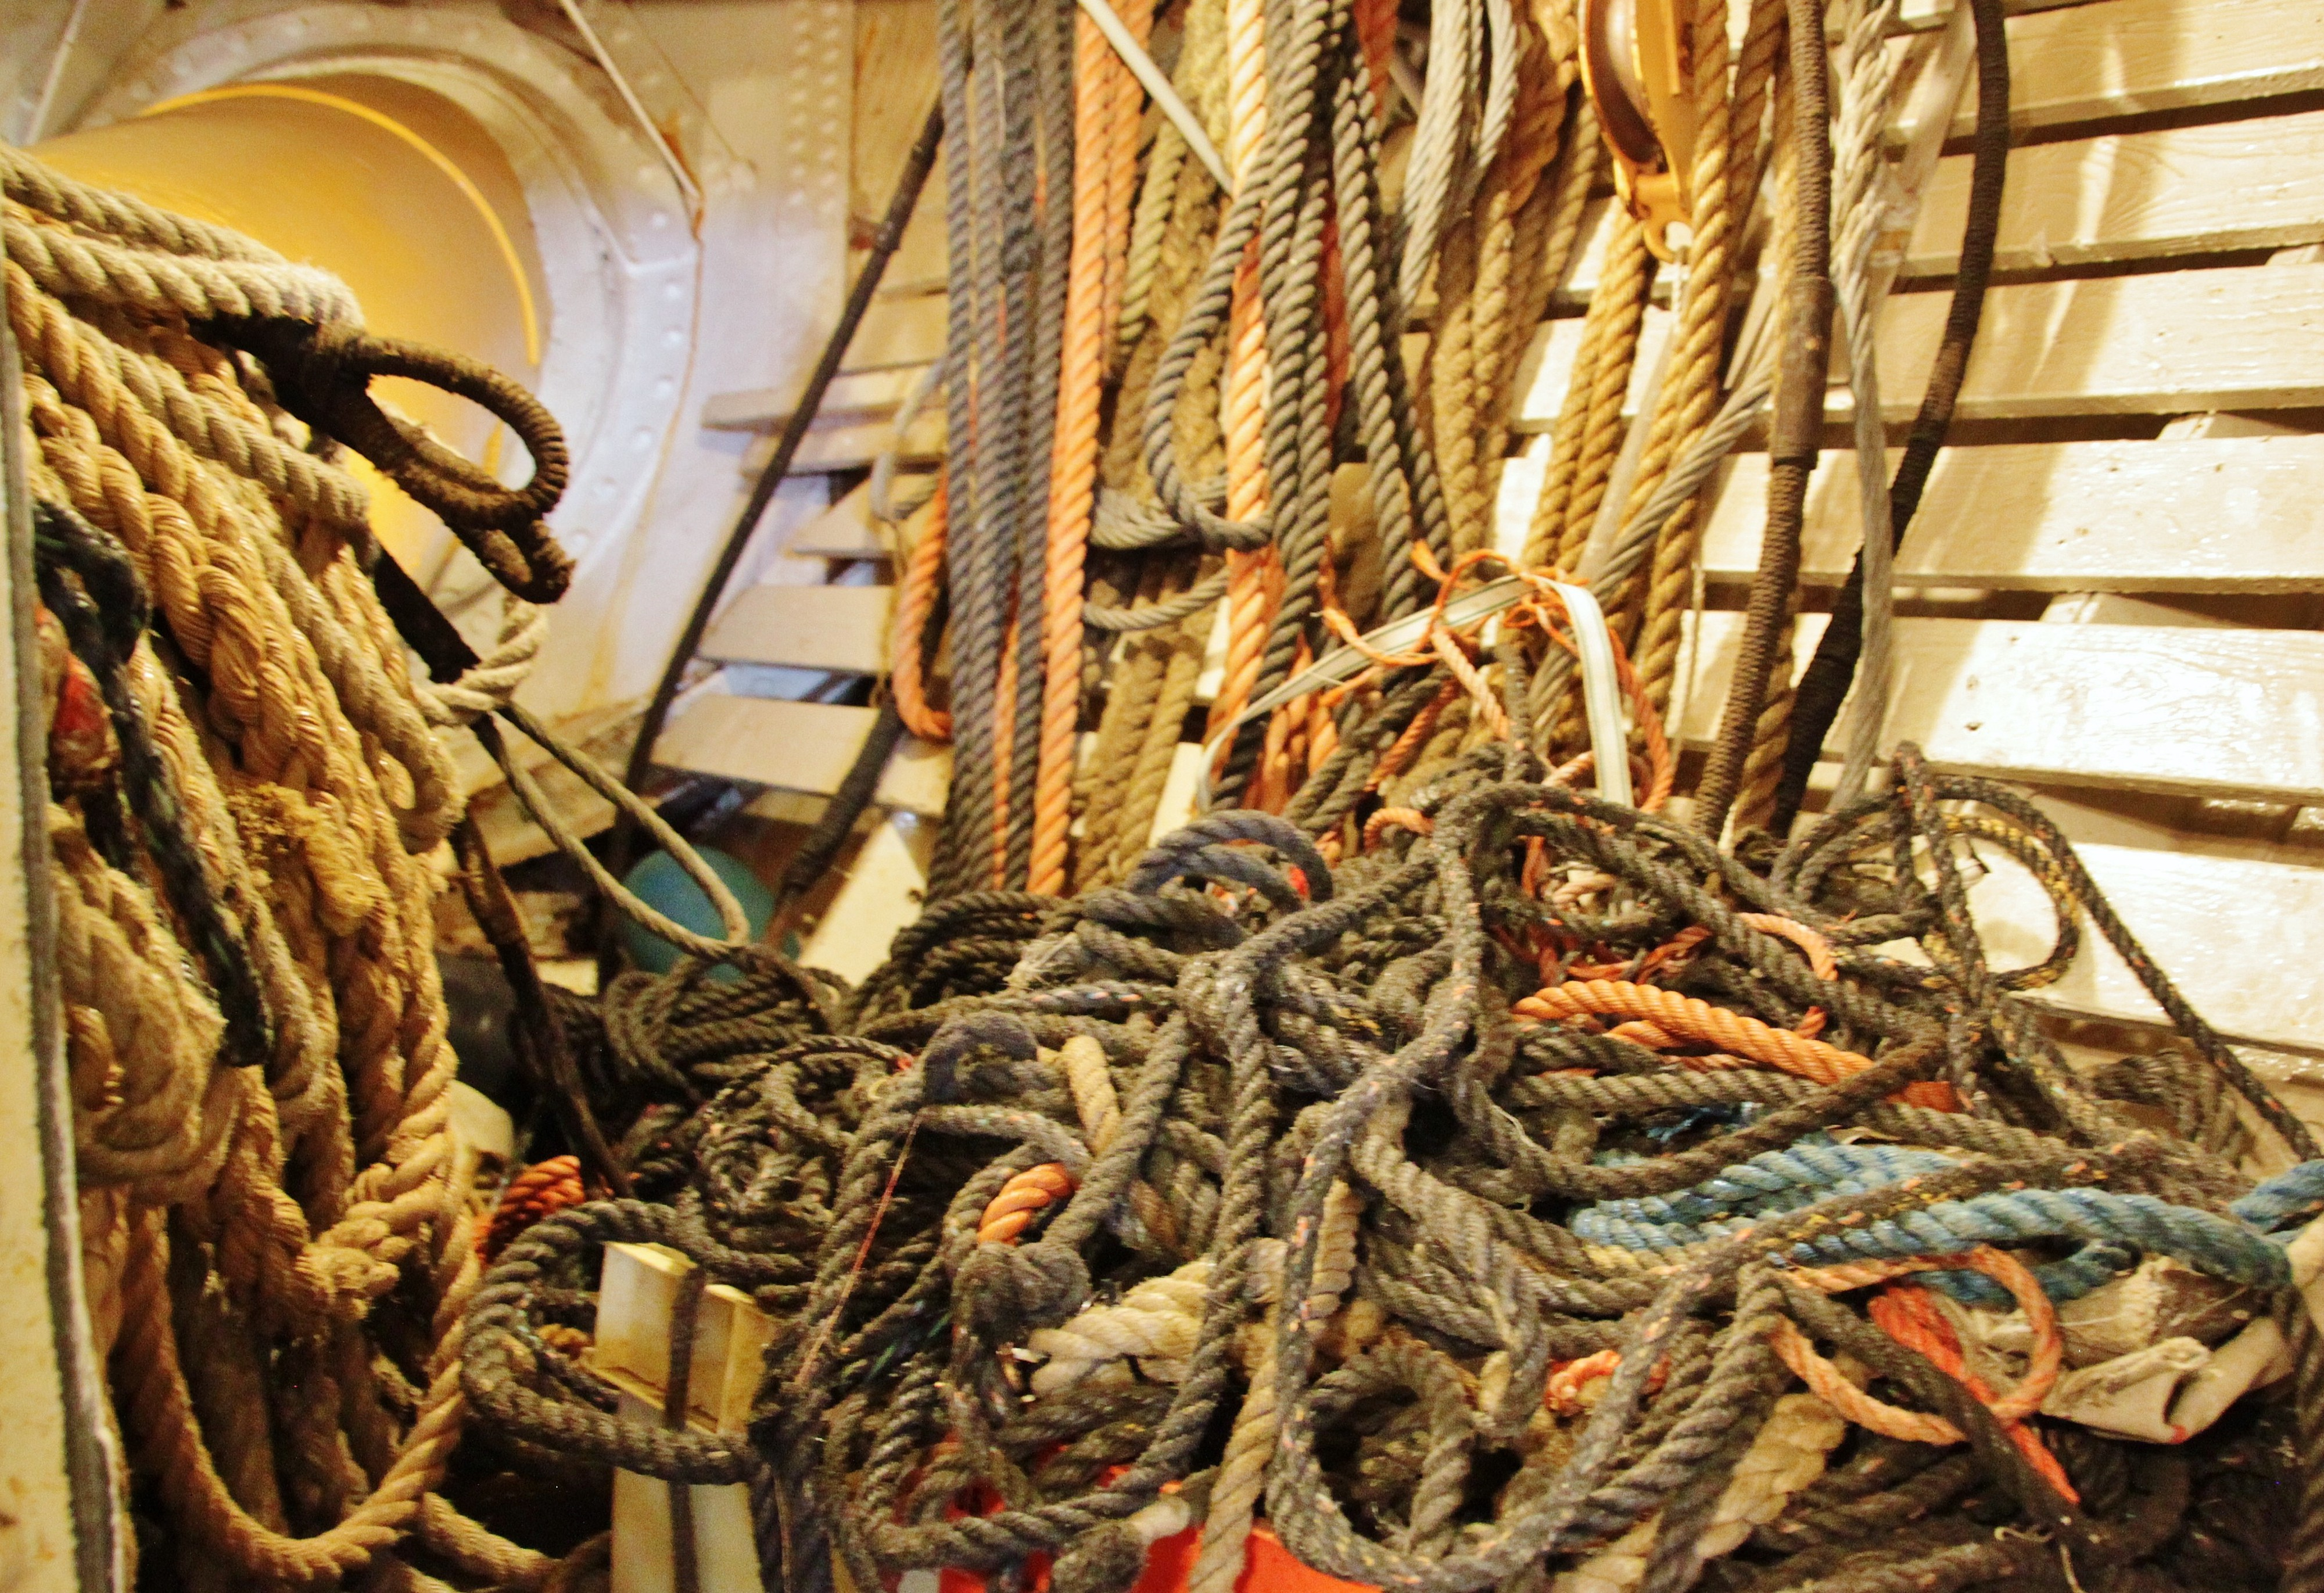 A tangled mess of ropes.